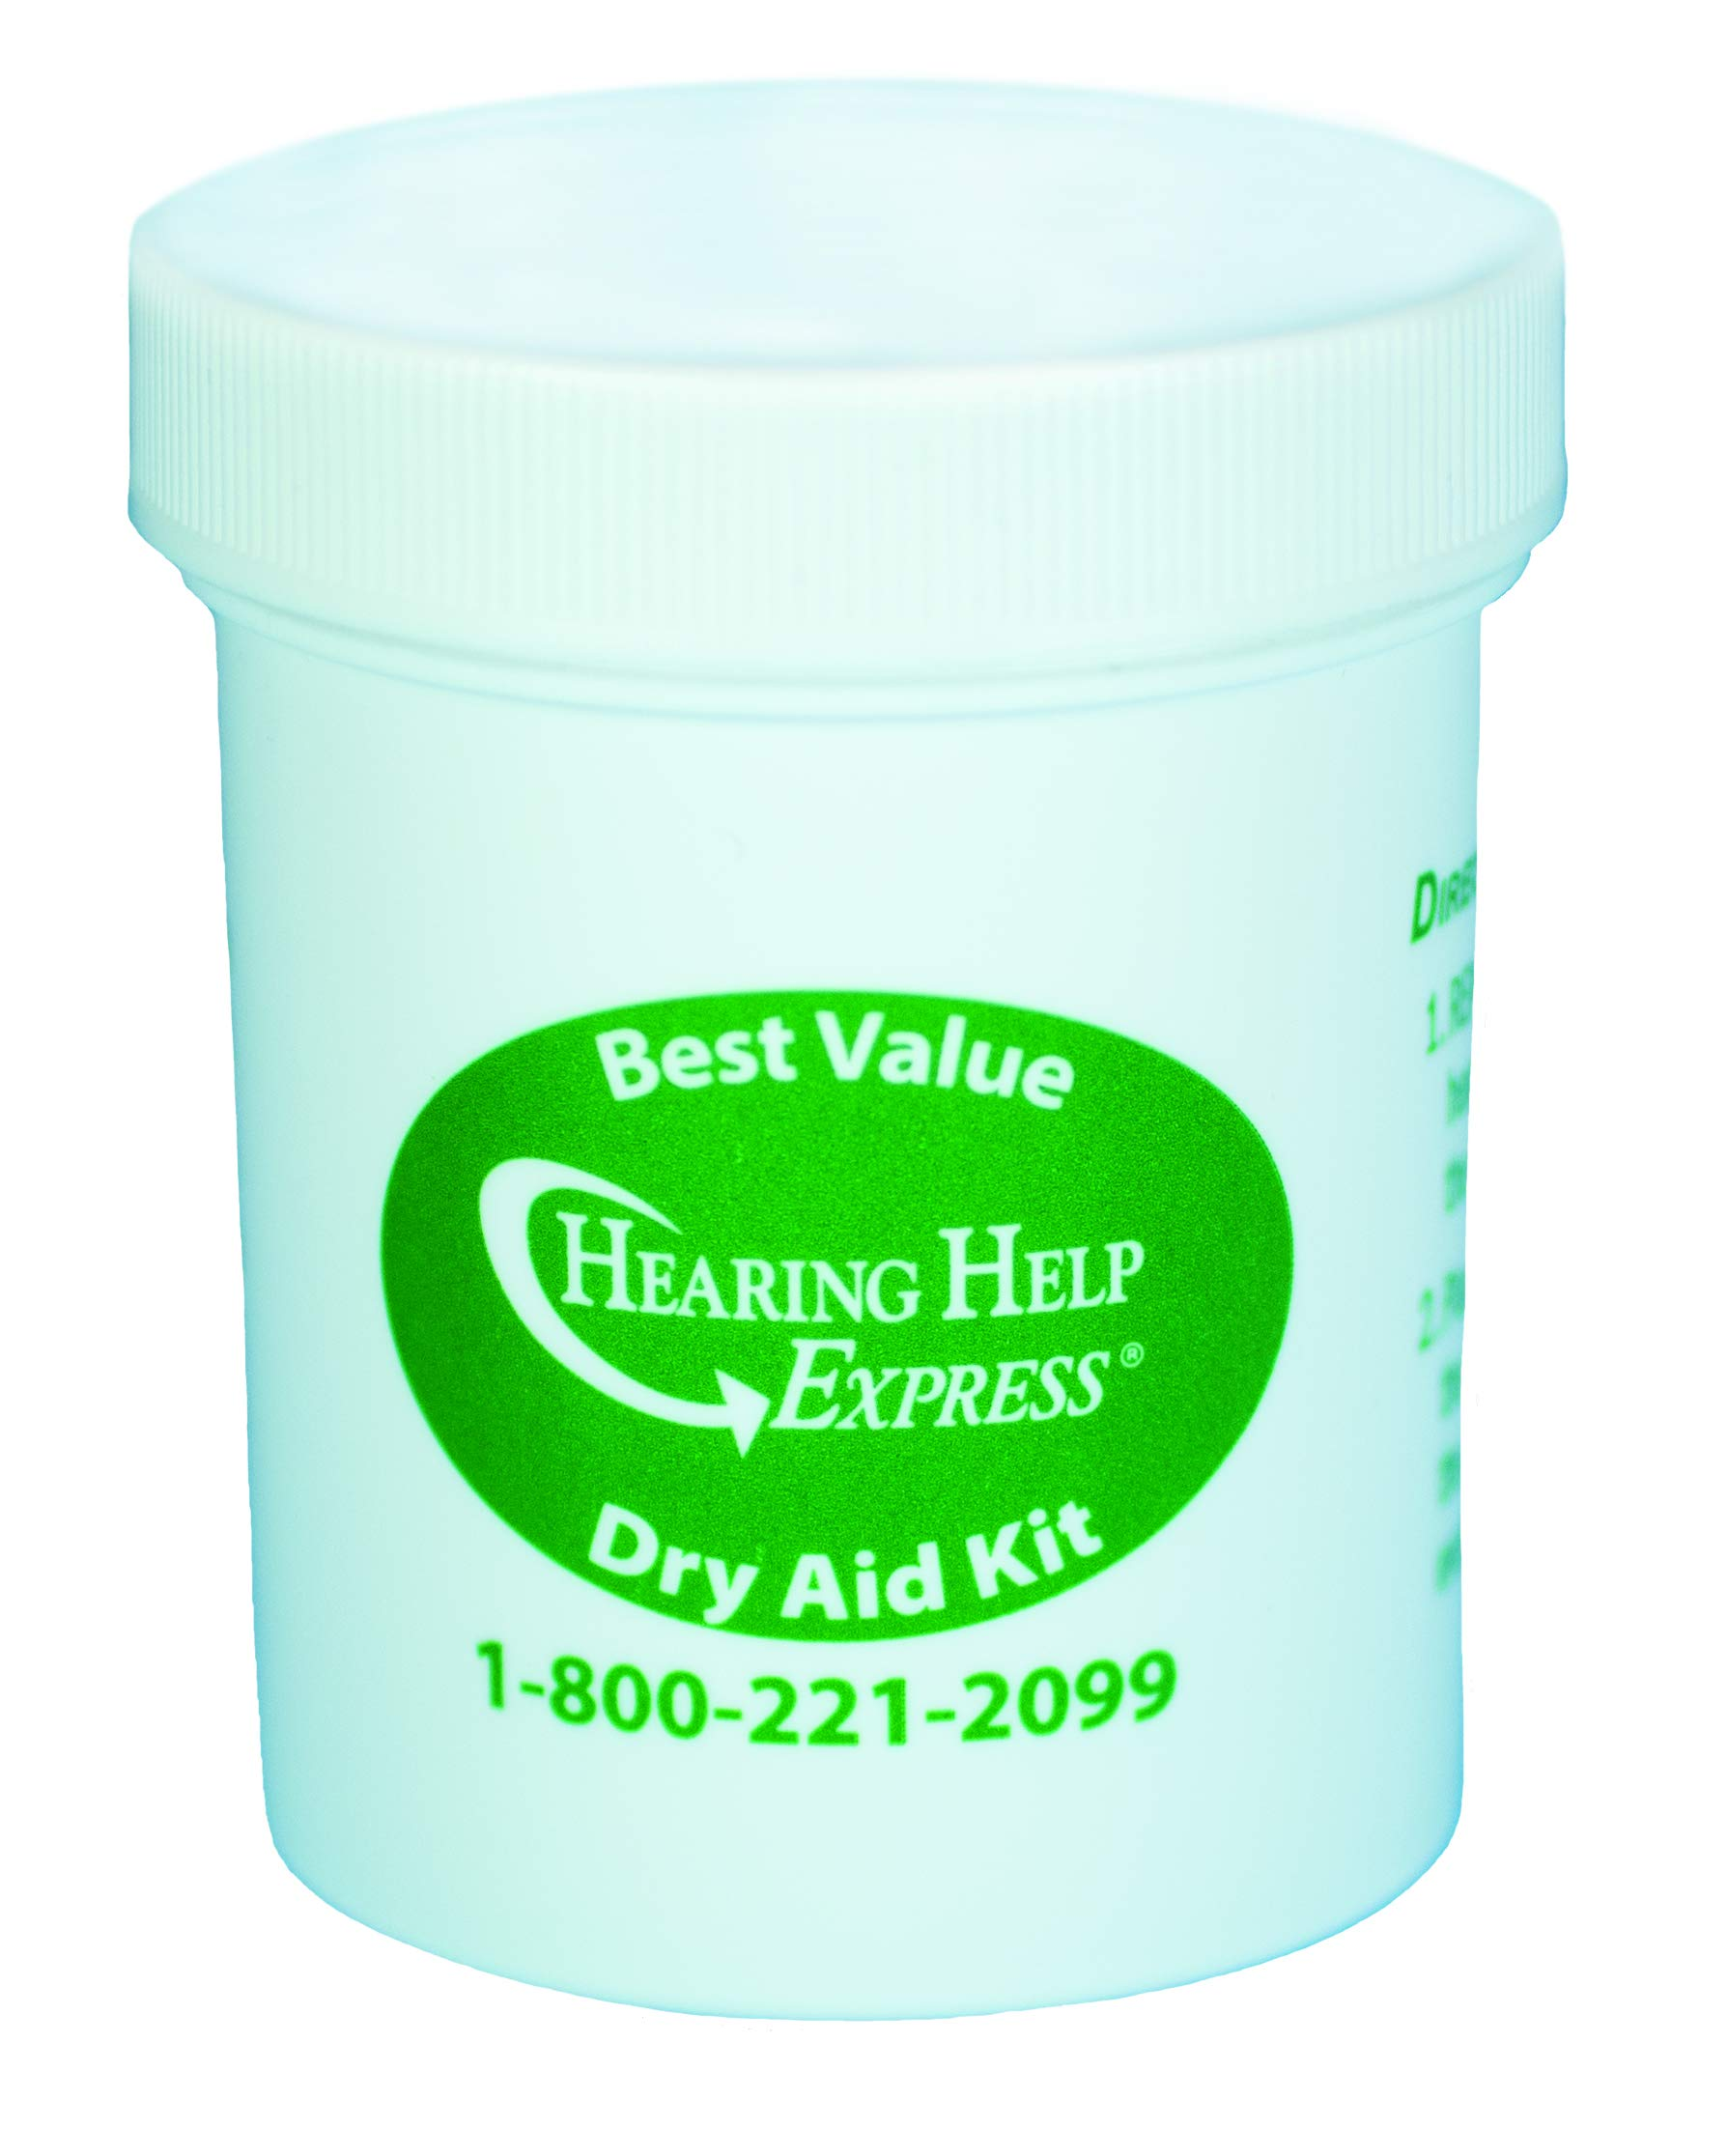 Best Value Hearing Aid Drying Kit by Hearing Help Express